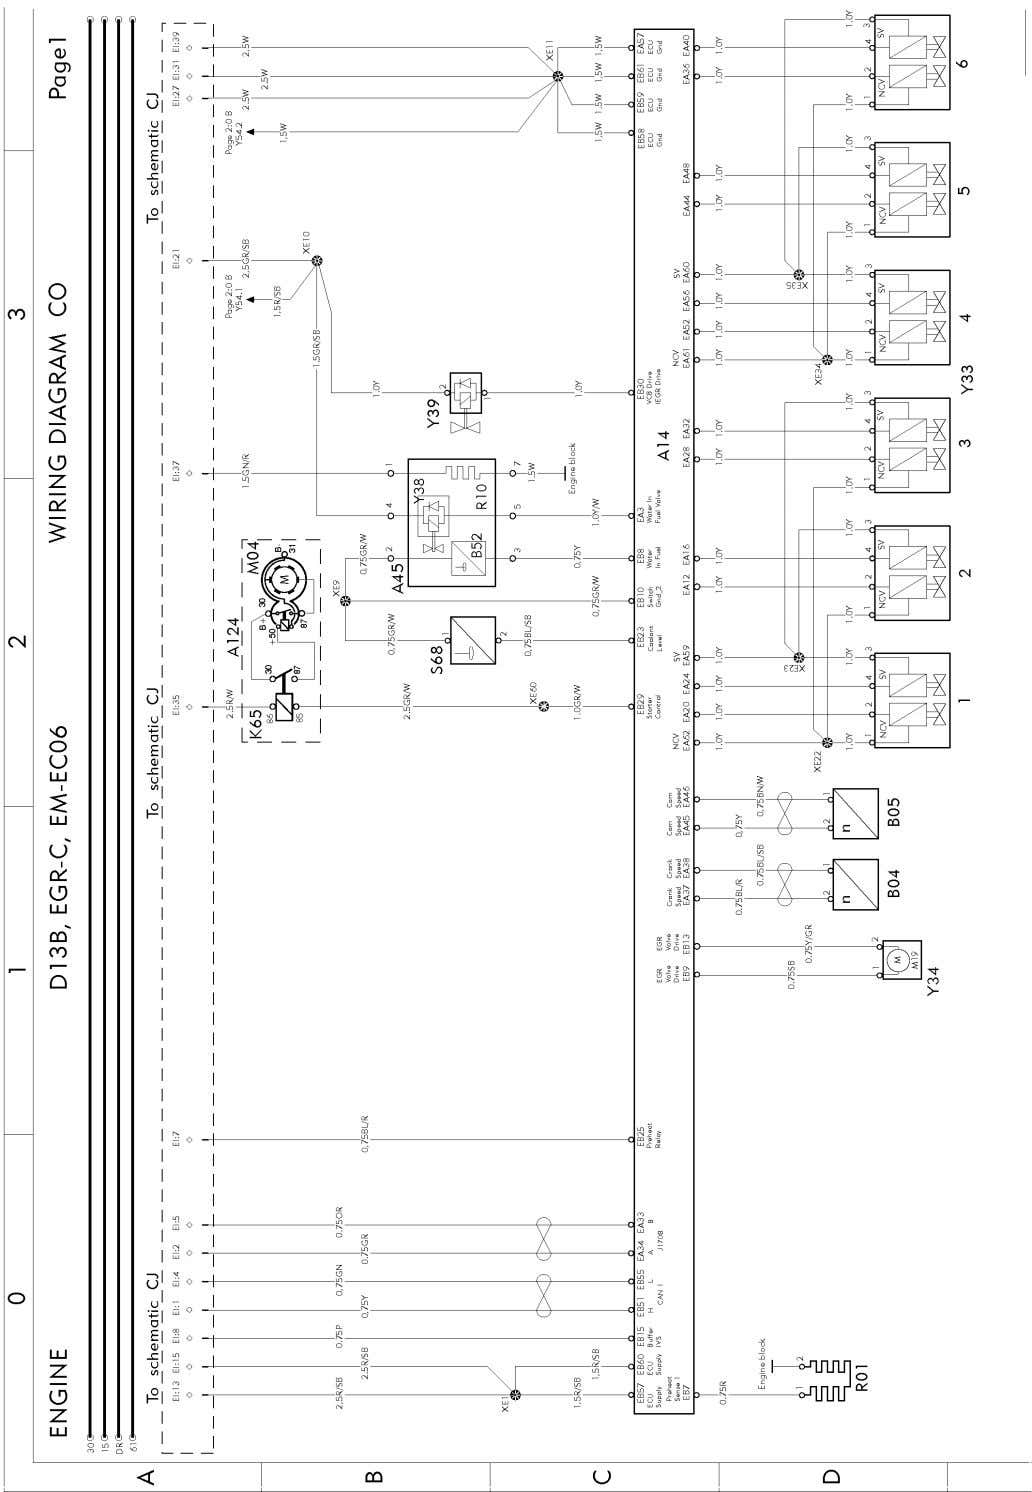 T3029201 Wiring diagram Page 25 (298)